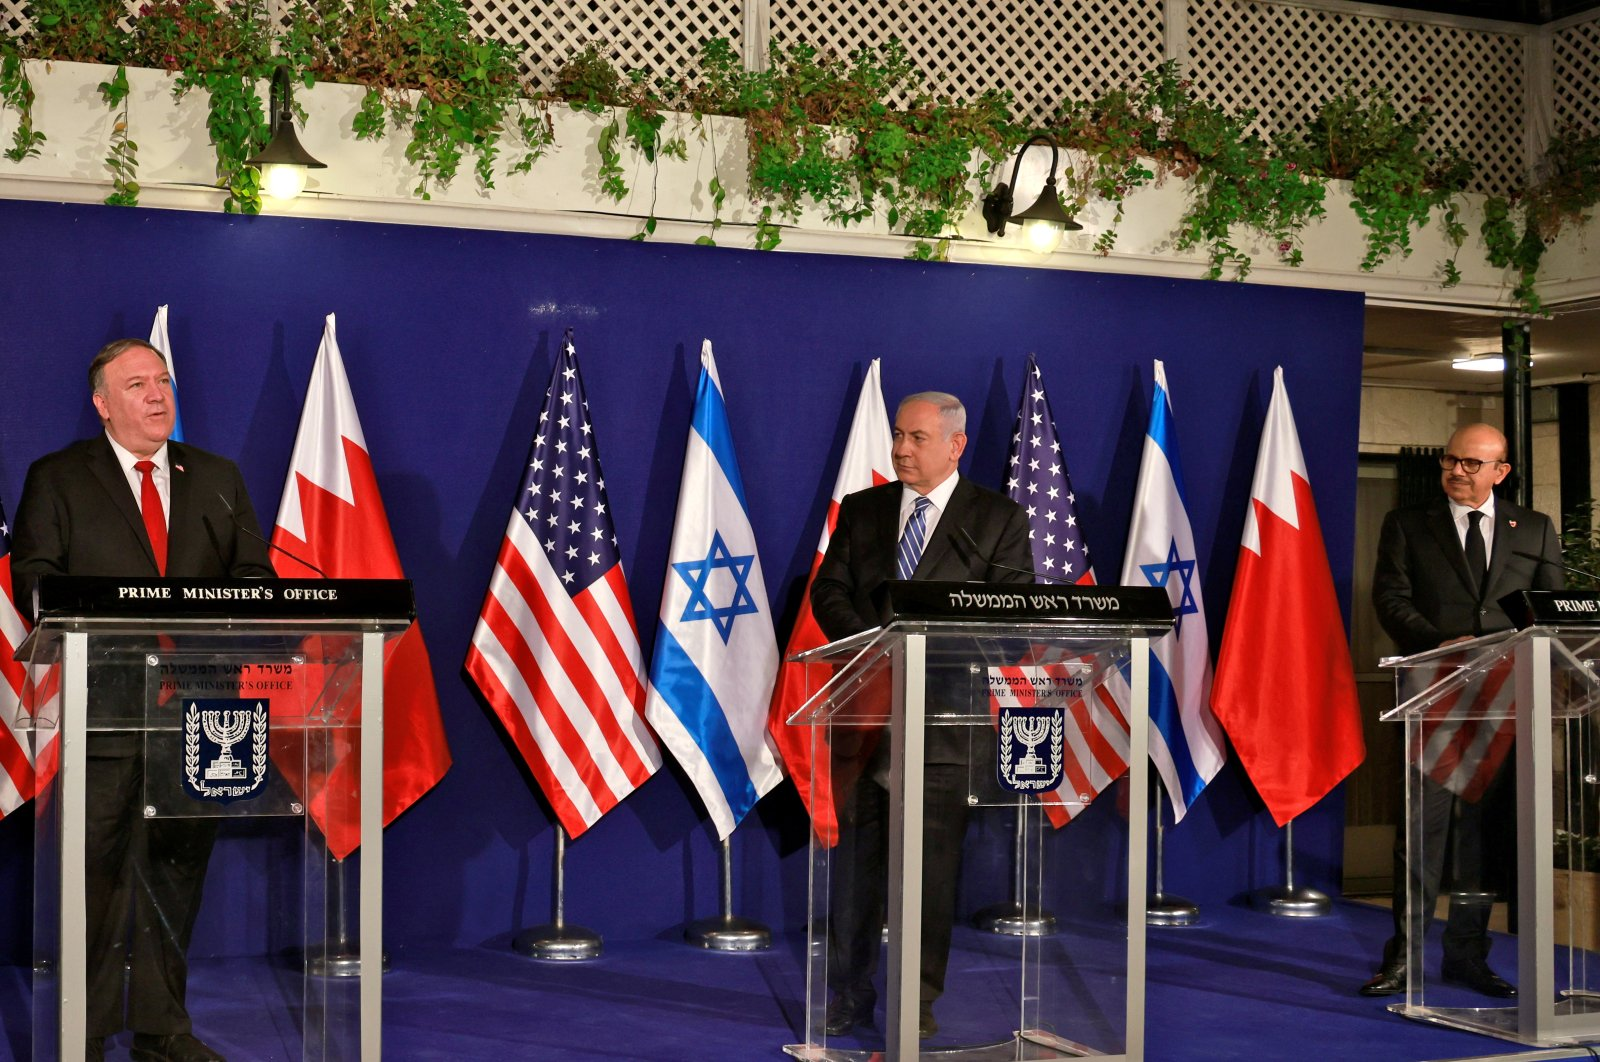 U.S. Secretary of State Mike Pompeo, Israeli Prime Minister Benjamin Netanyahu and Bahrain's Foreign Minister Abdullatif Al Zayani deliver joint statements during their meeting, Jerusalem, Nov. 18, 2020. (REUTERS Photo)